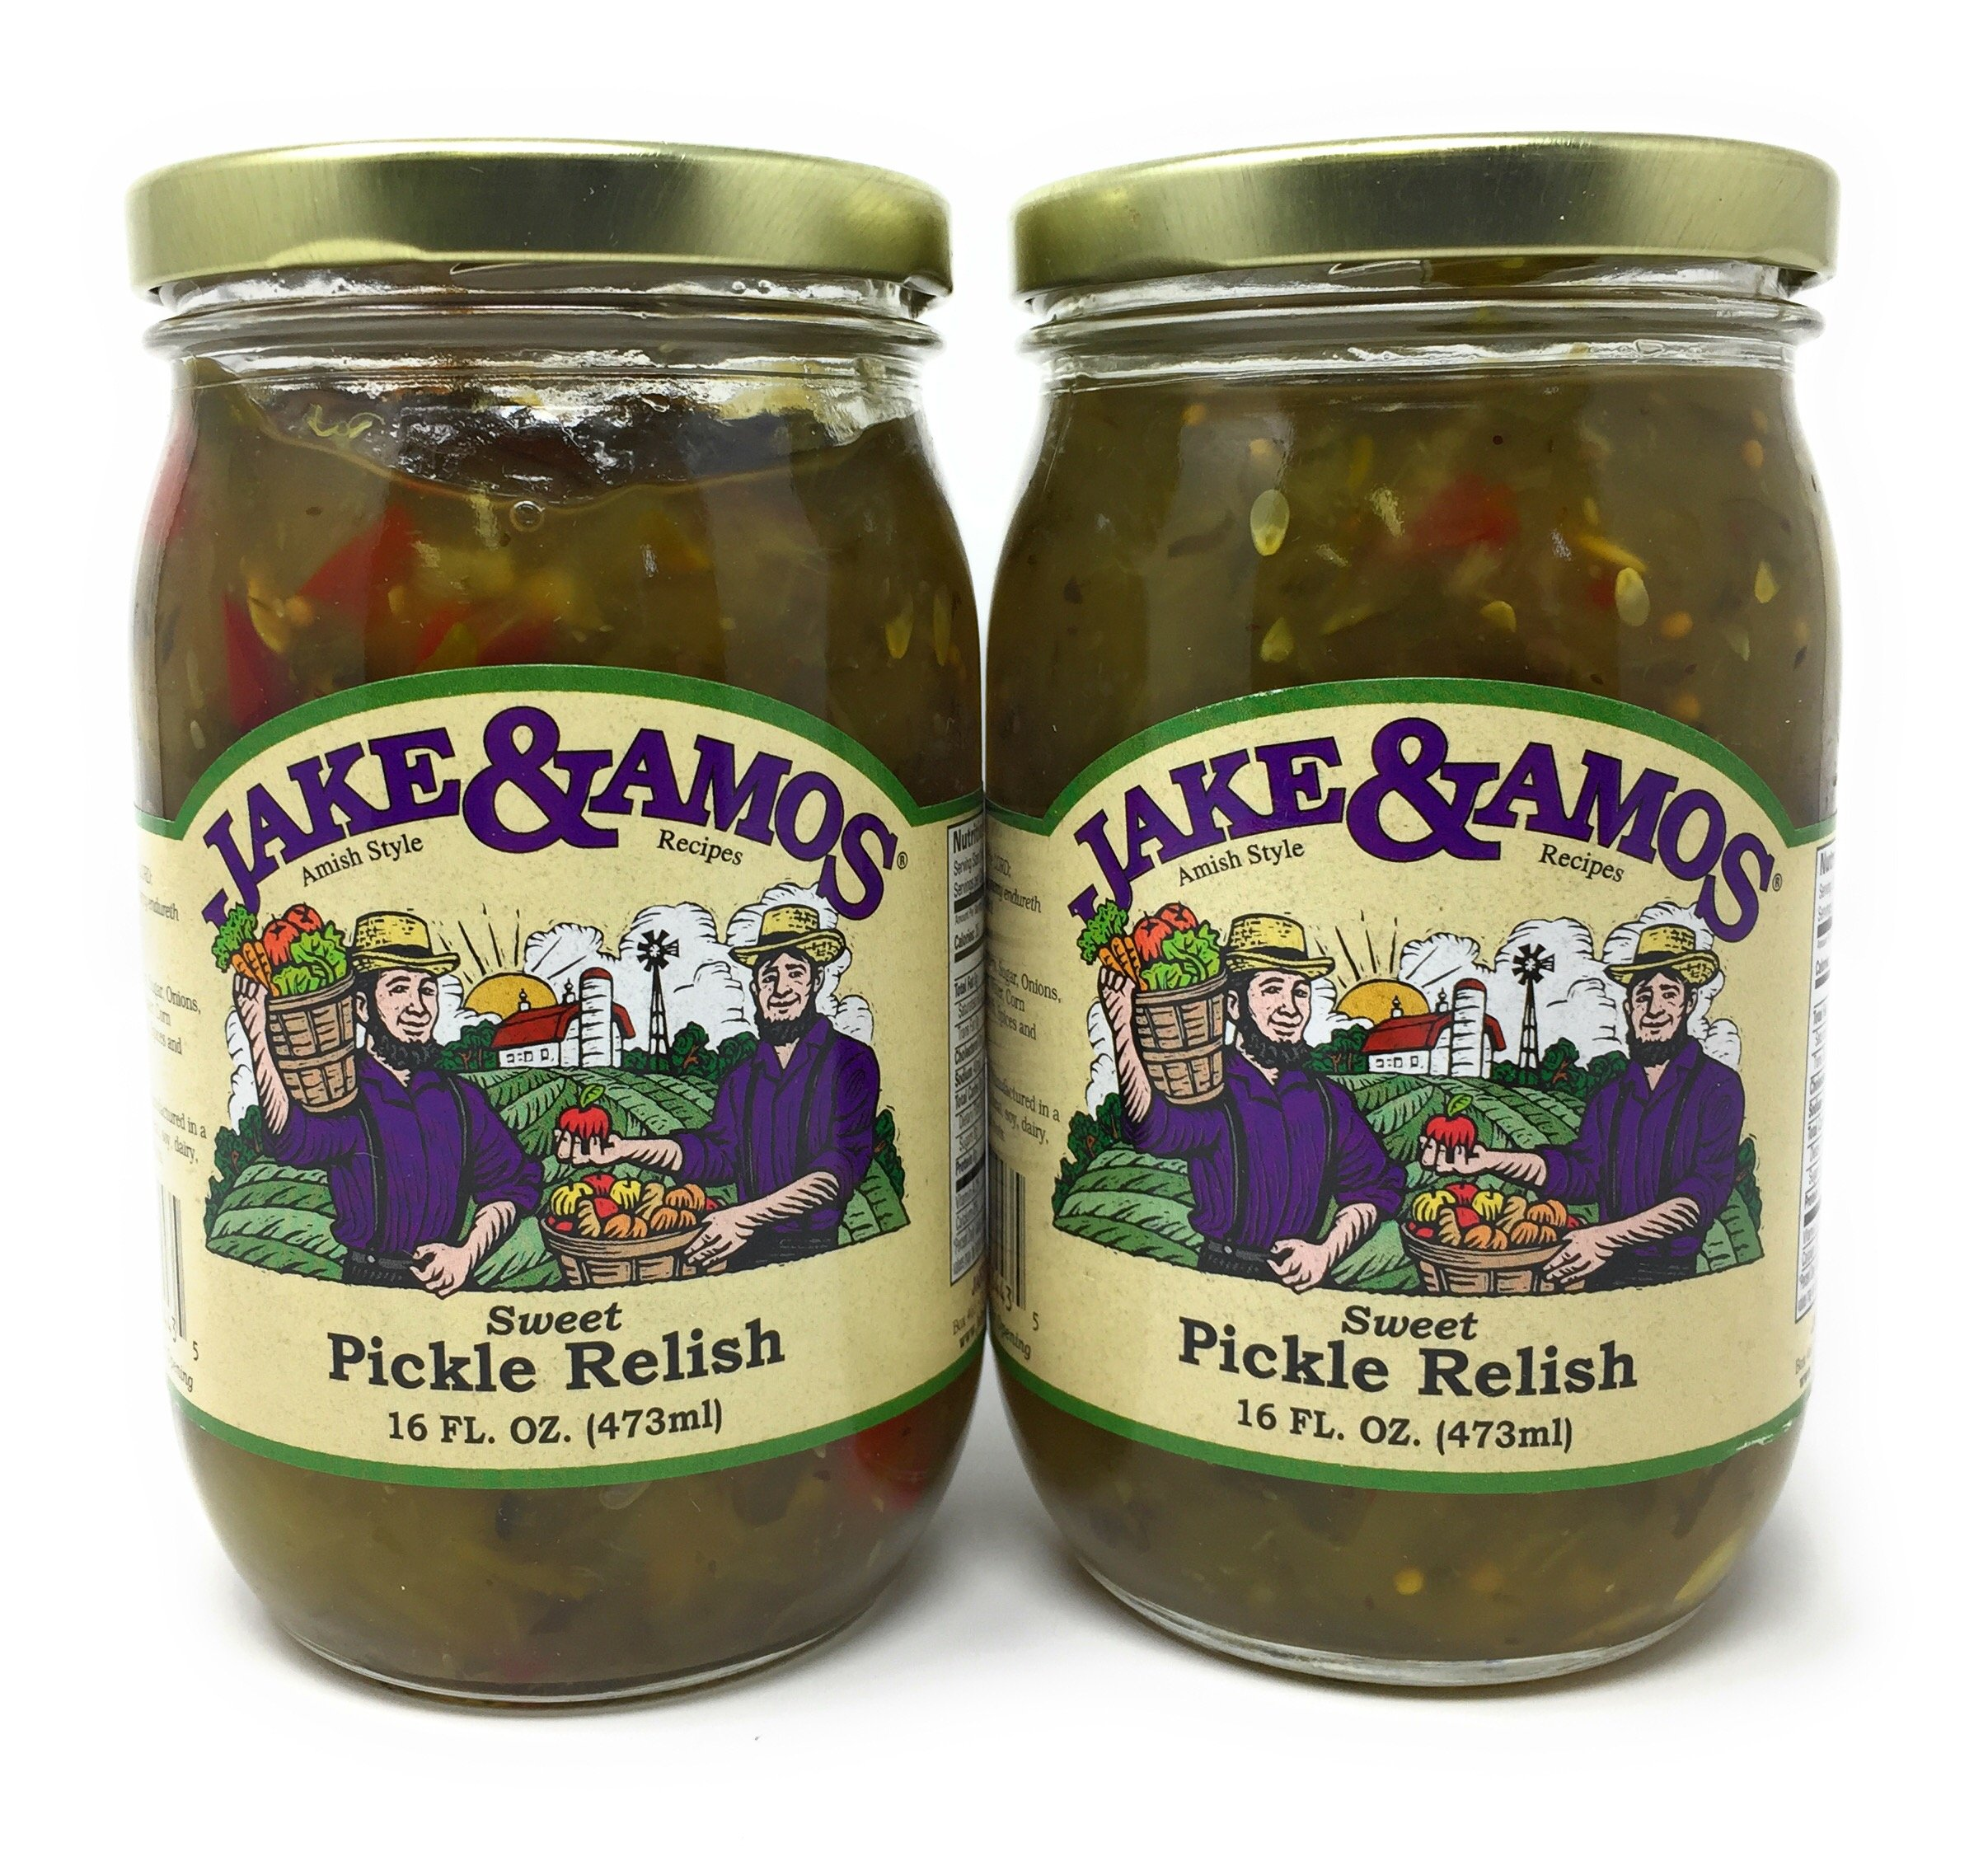 Jake & Amos Sweet Pickle Relish / 2 - 16 Oz. Jars by Jake and Amos